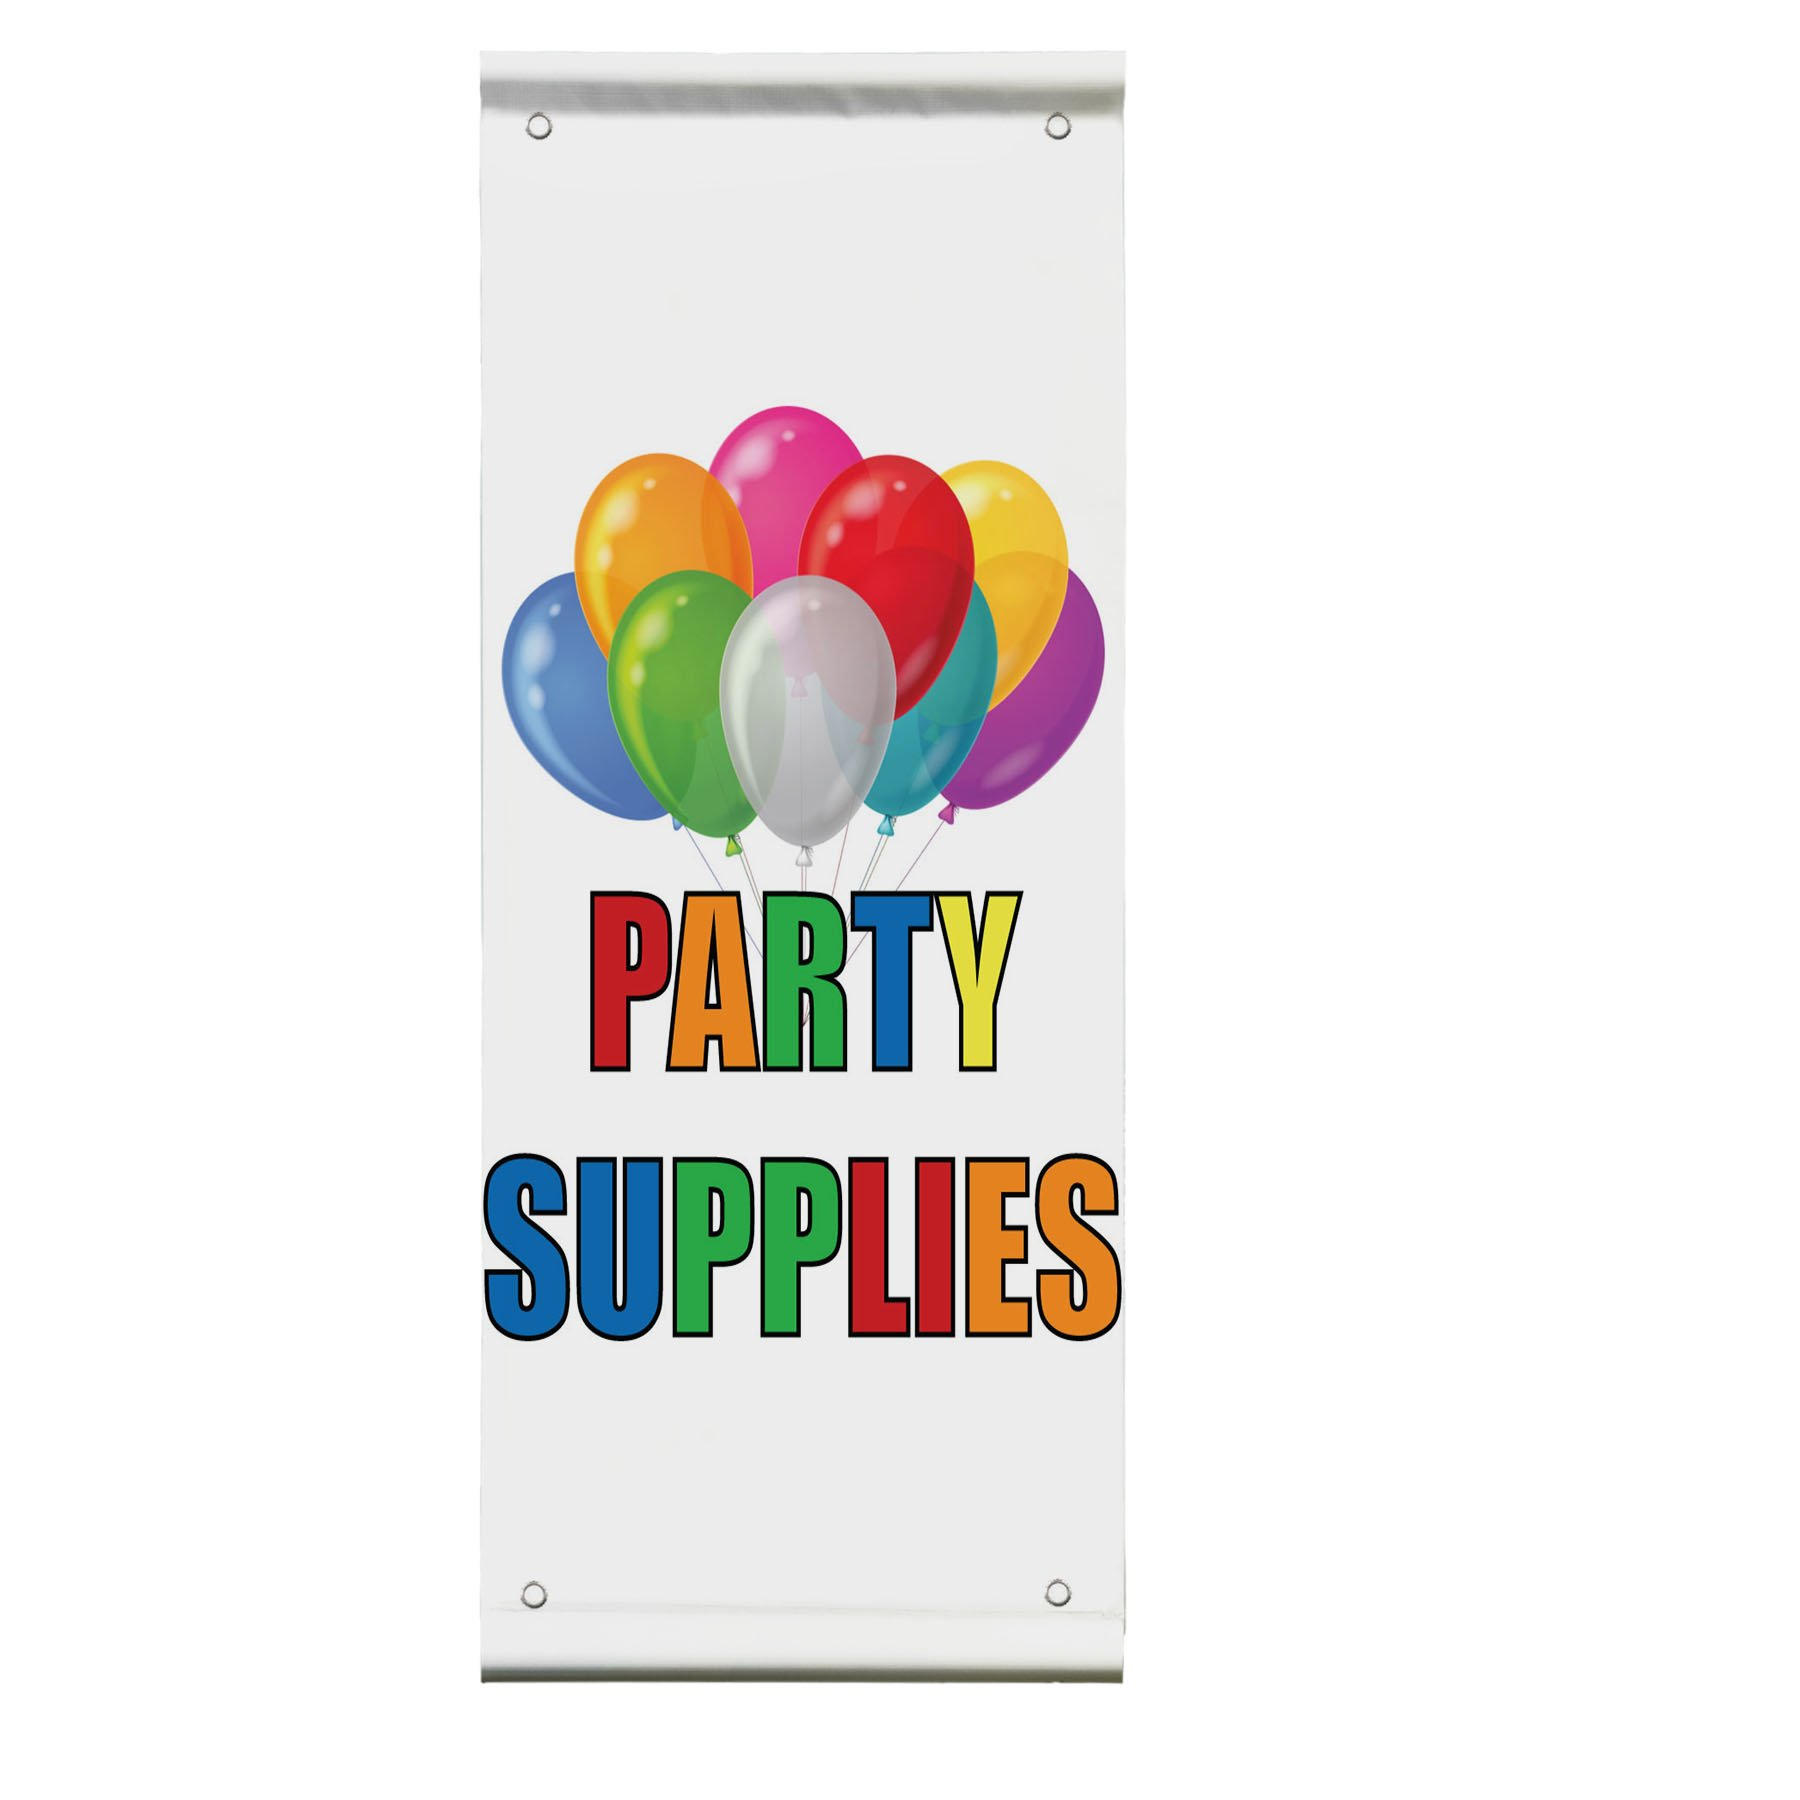 Party Supplies Double Sided Vertical Pole Banner Sign 36 in x 48 in w/ Wall Bracket